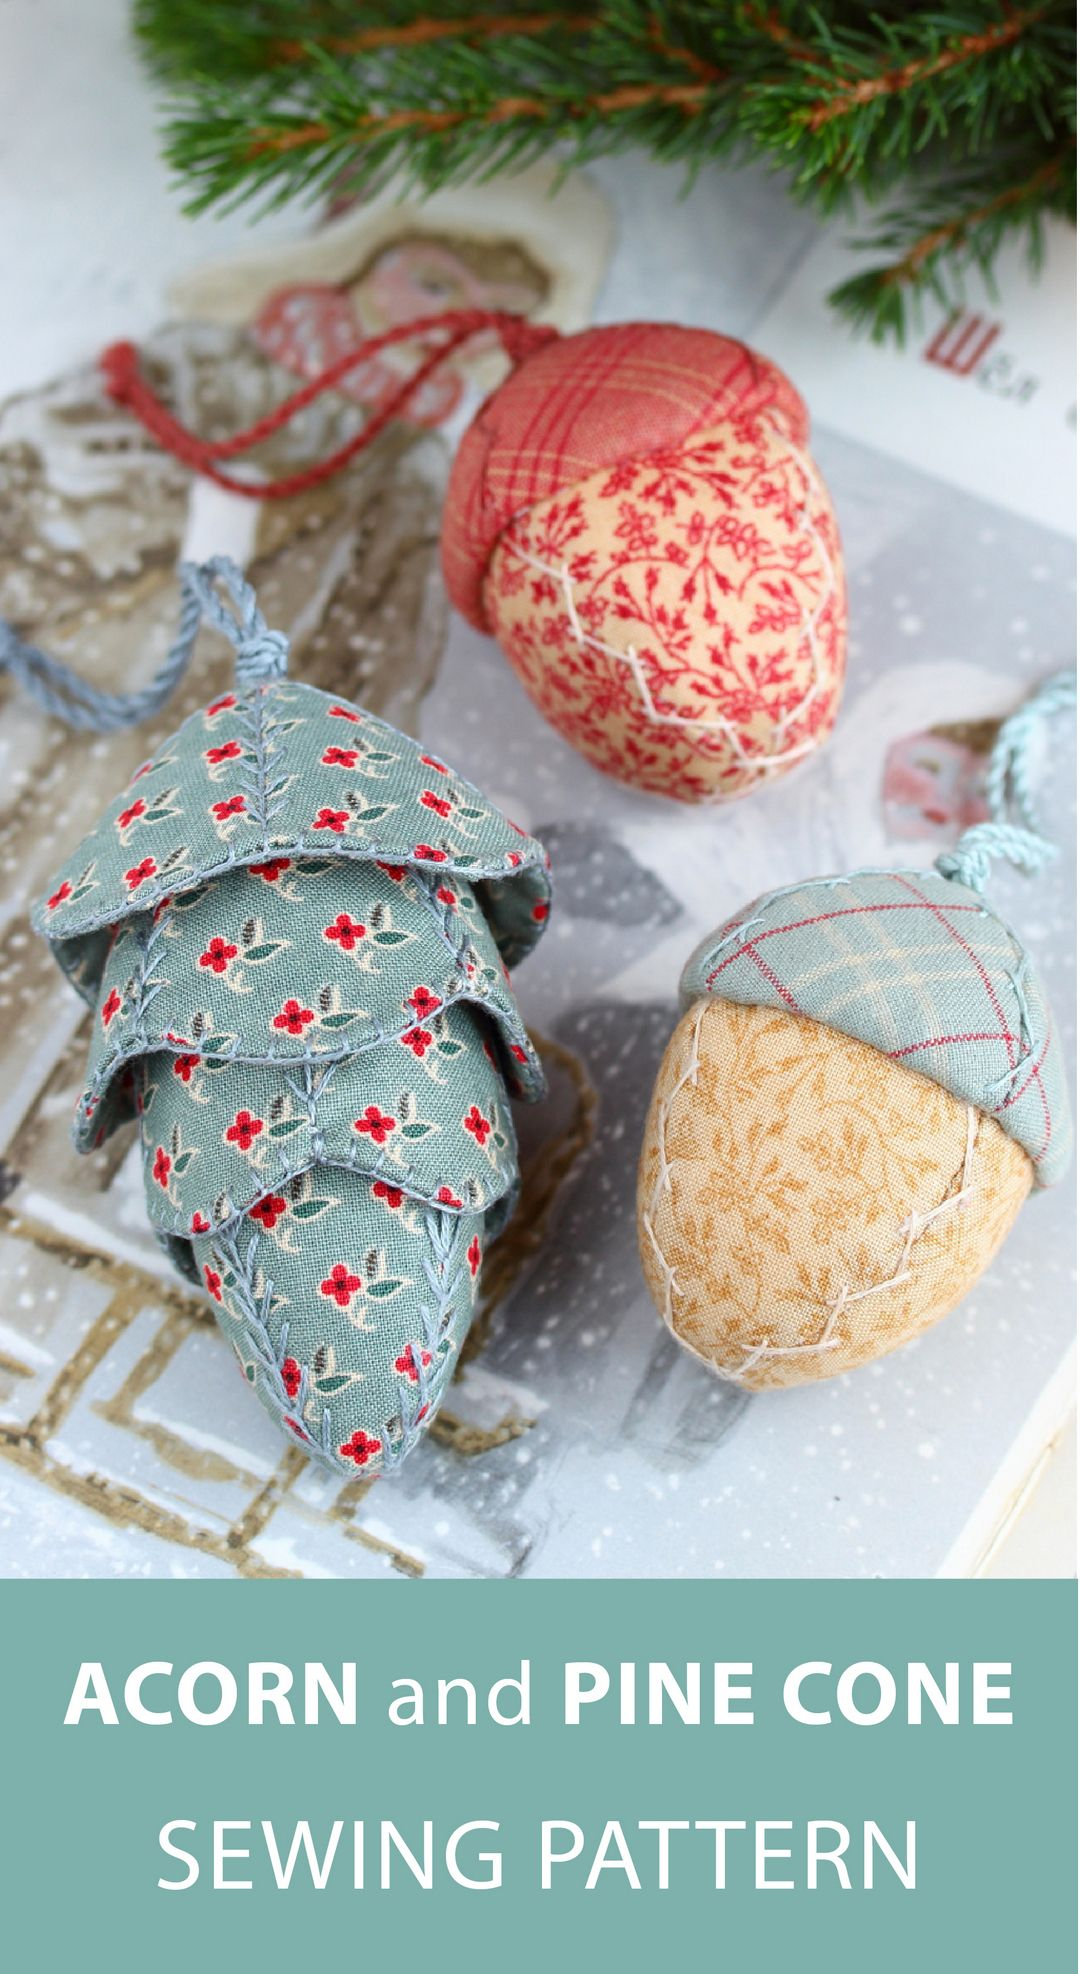 Pdf Acorn And Pine Cone Sewing Pattern Fabric Christmas Etsy In 2021 Fabric Christmas Ornaments Christmas Ornament Pattern Christmas Ornaments Homemade